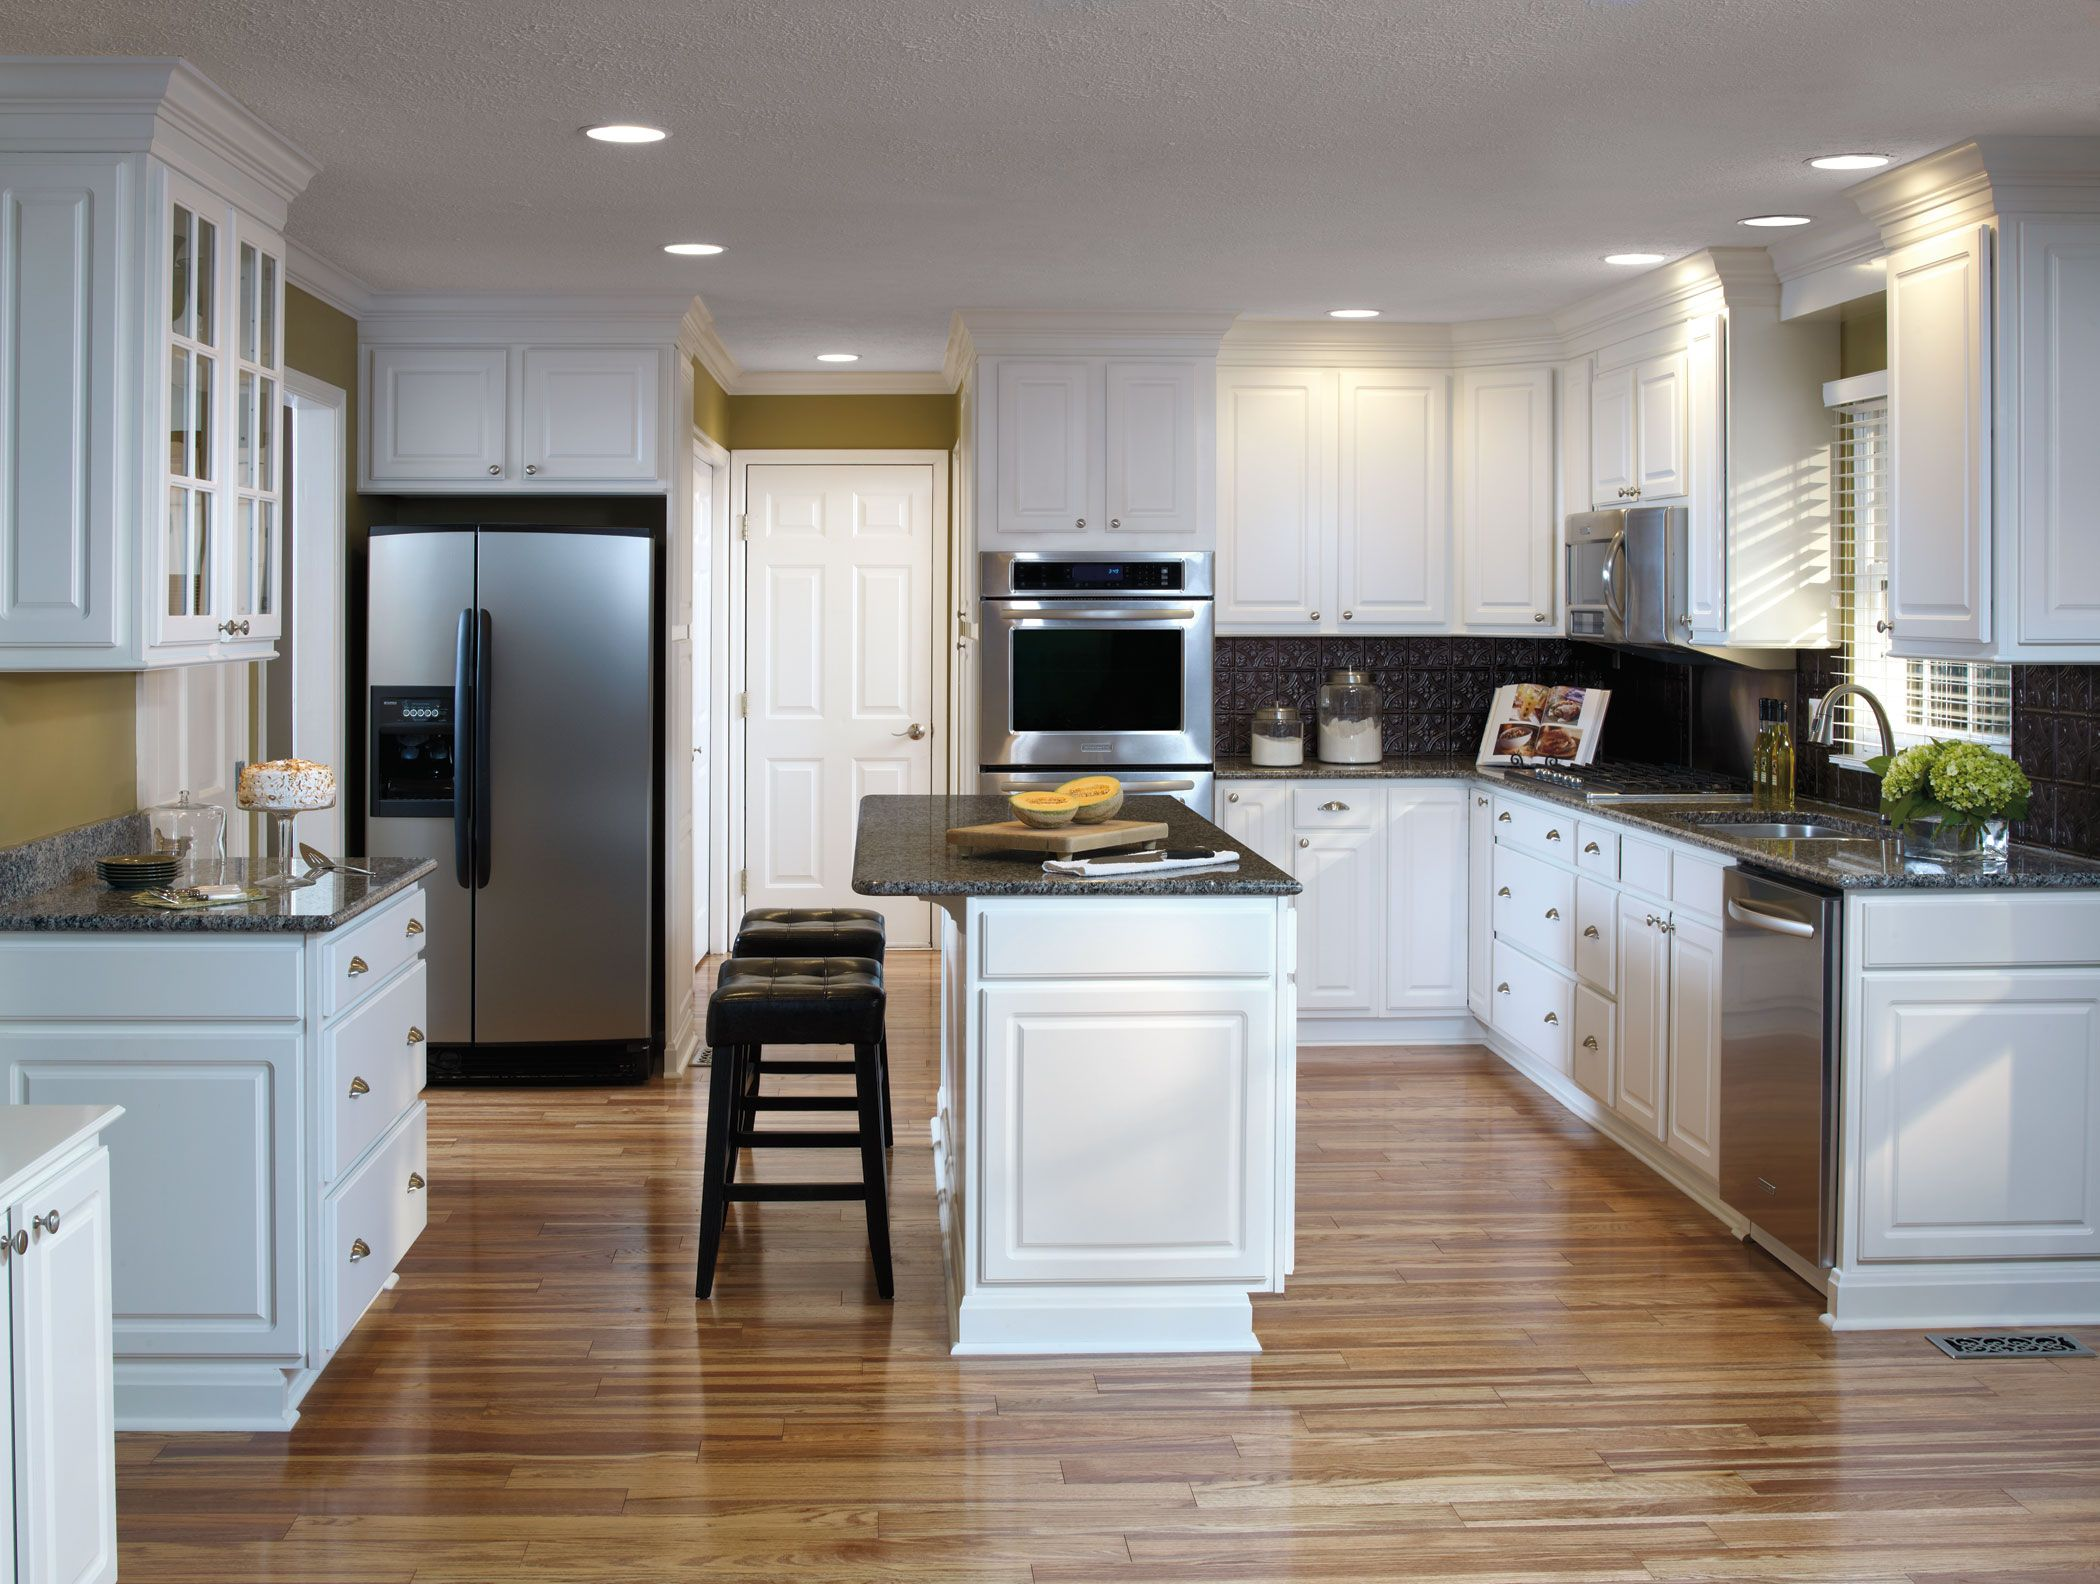 Thermofoil Kitchen Cabinets Versatile Looks And Easy Care Durability Meet In